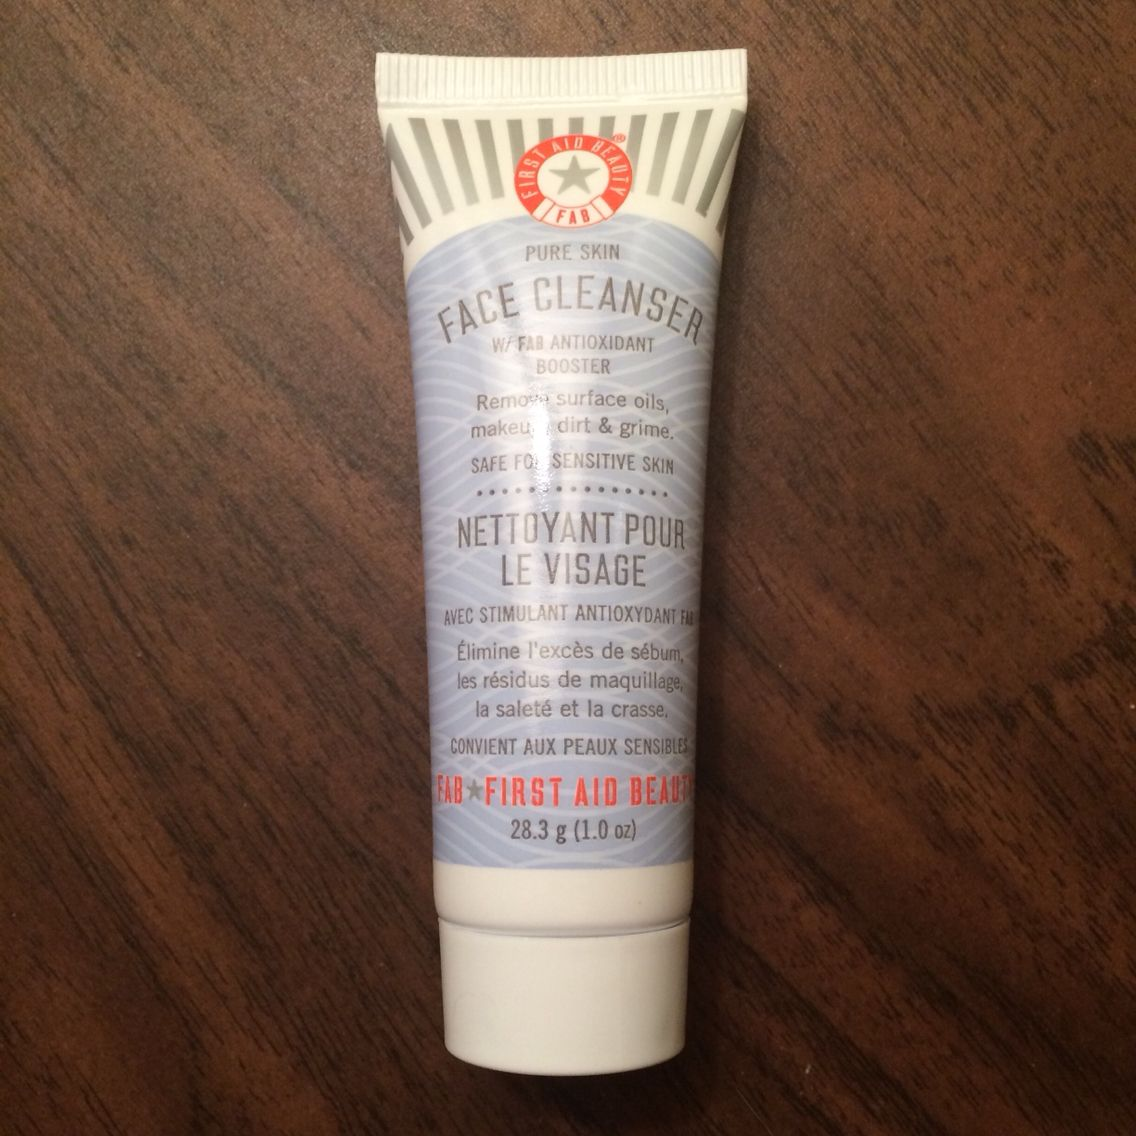 First Aid Beauty Face Cleanser, $4.